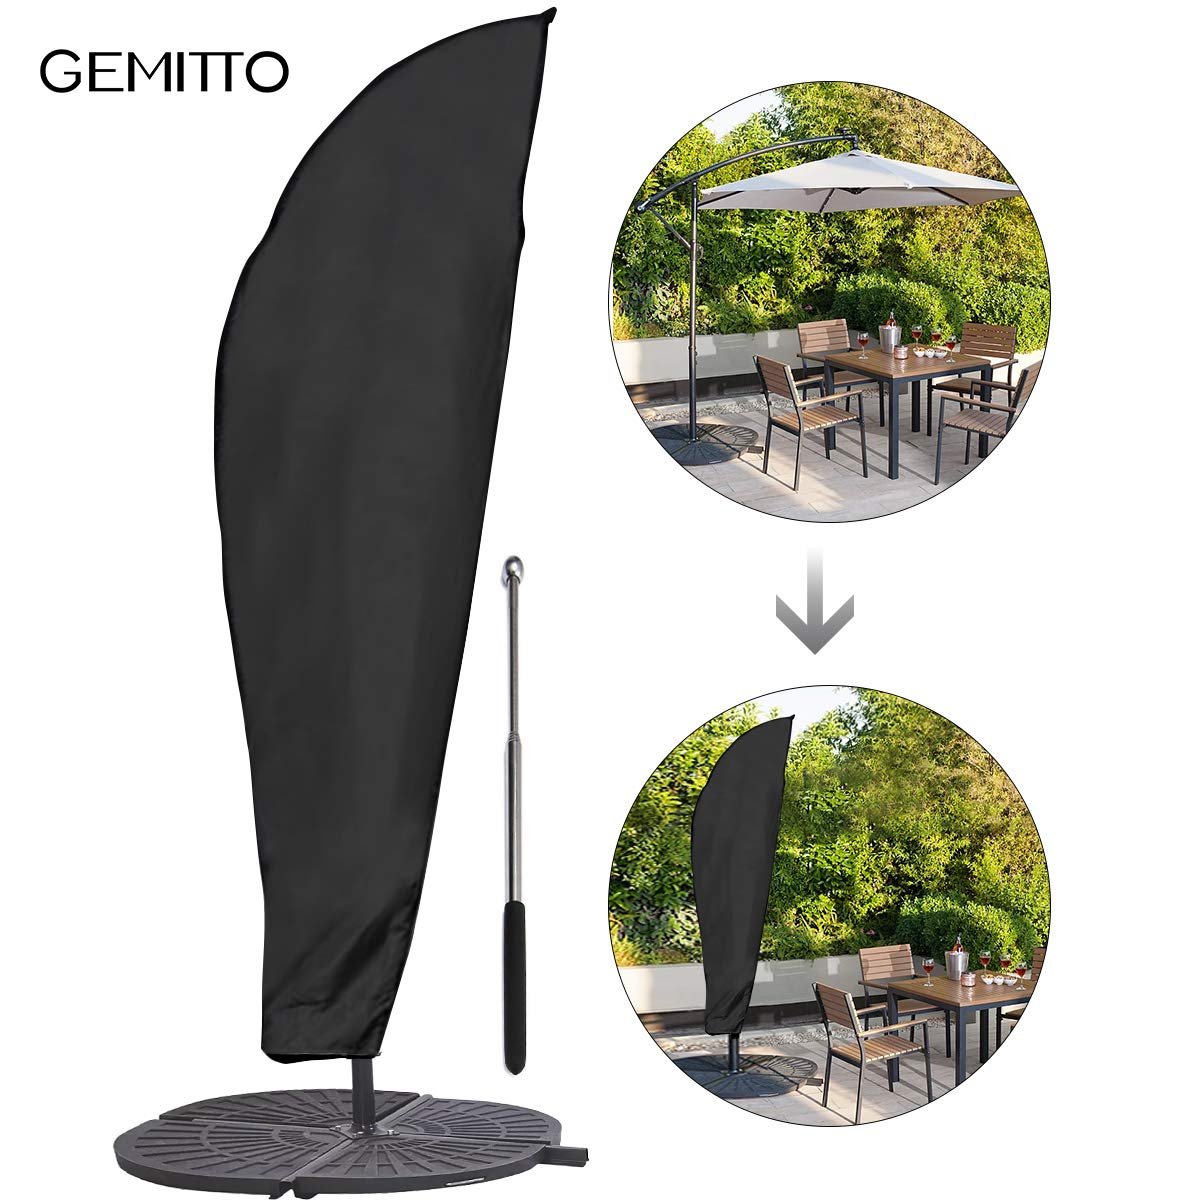 GEMITTO Umbrella Cover, Simply Shade Waterproof Patio Outdoor Umbrella Cover, Durable Offset Off Swing Umbrella Cover with Rod, Fits for 9-11ft Cantilever Overhang Umbrella by GEMITTO